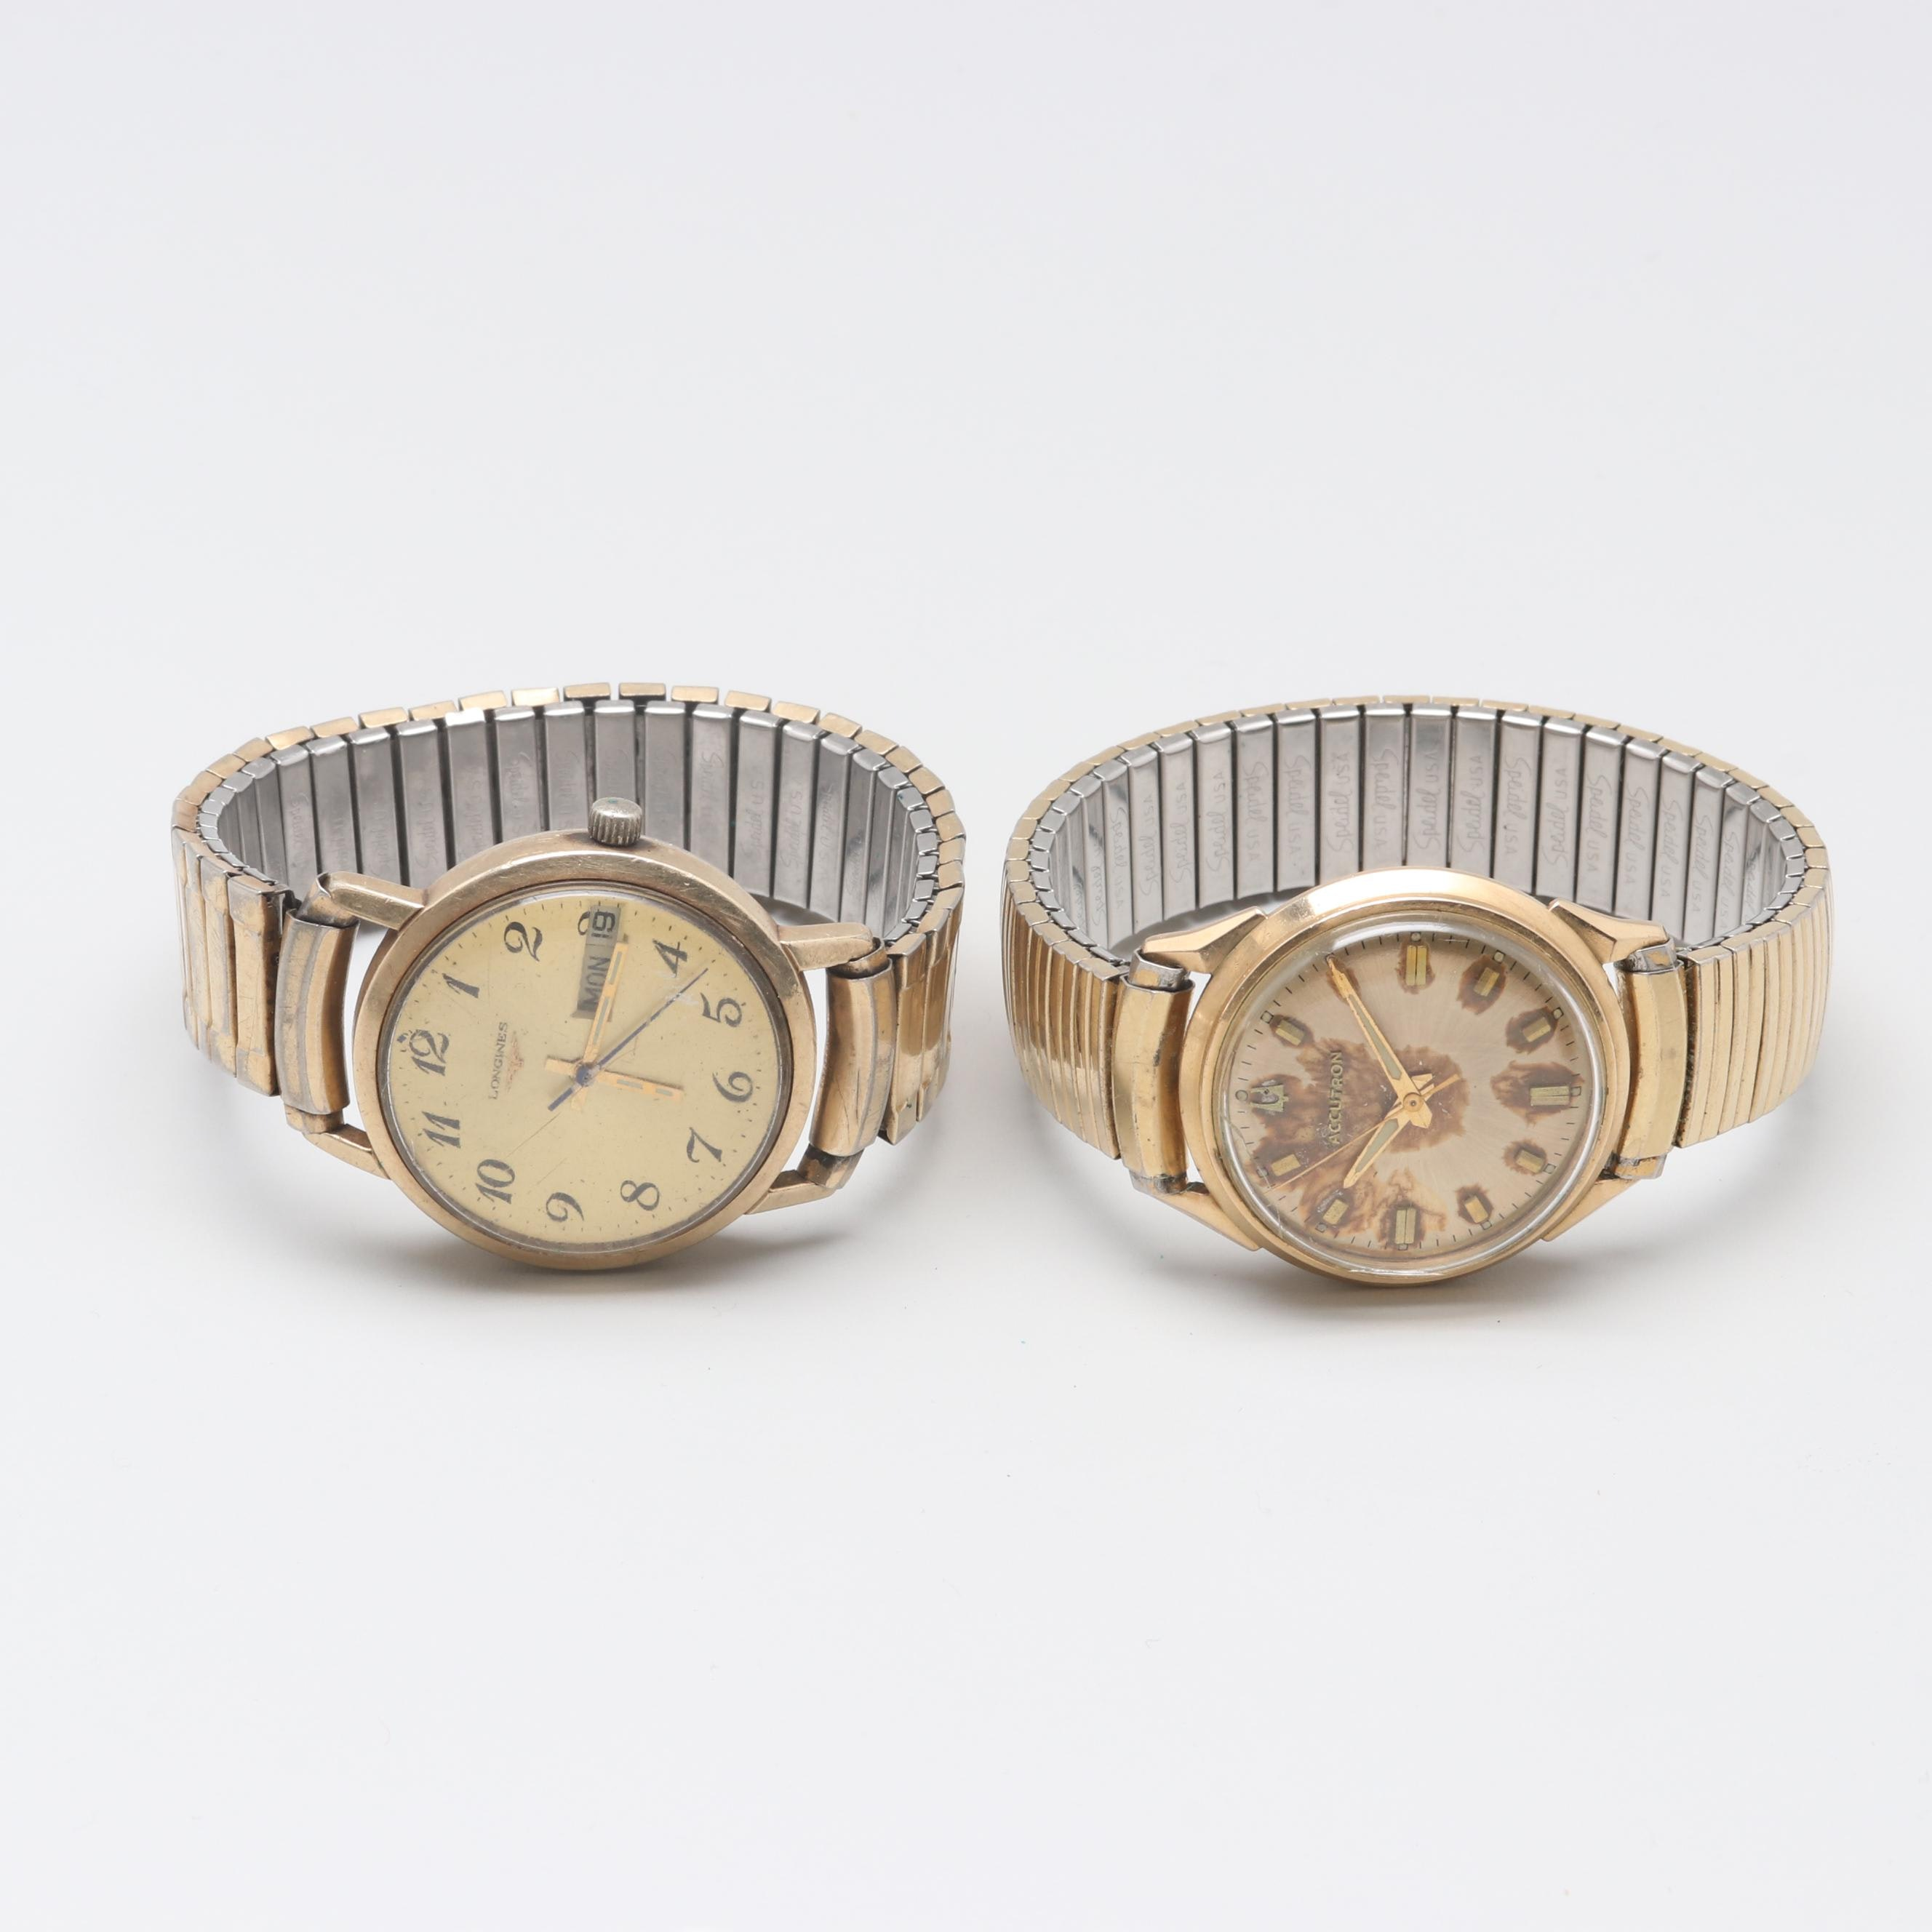 Bulova and Longines 10K Gold Filled Wristwatches With Expansion Bracelets